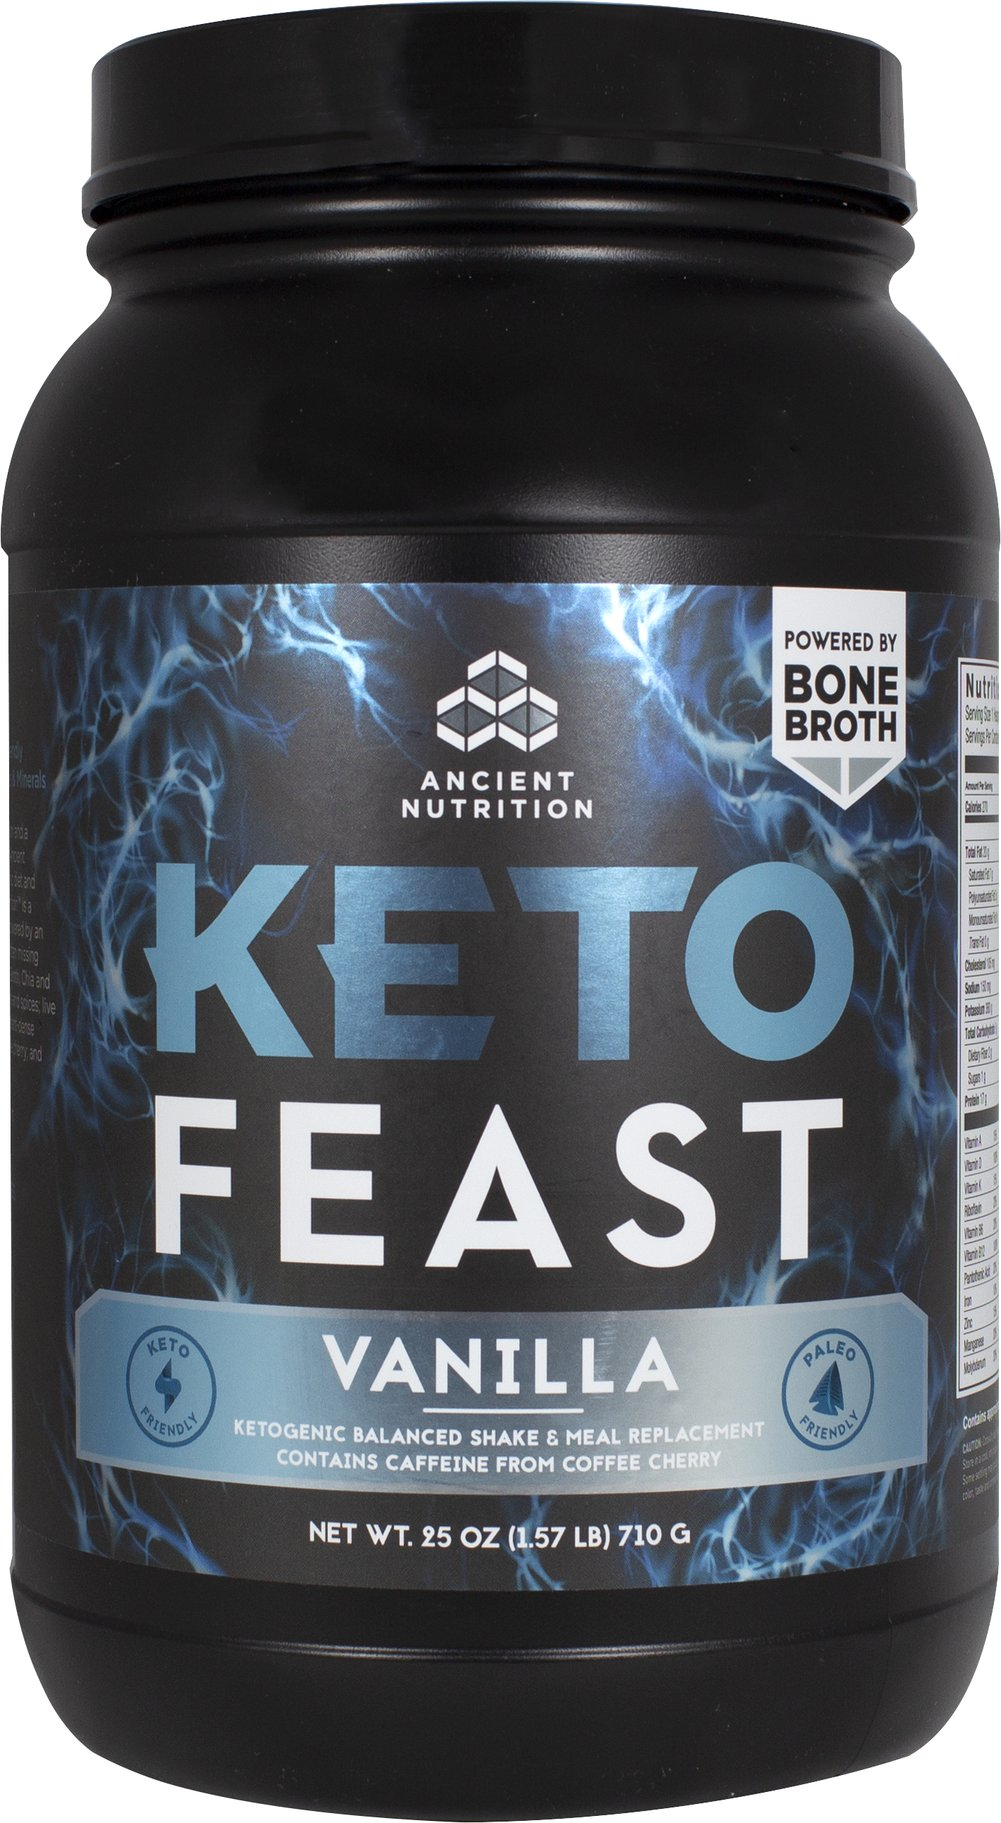 KetoFEAST - Vanilla Thumbnail Alternate Bottle View